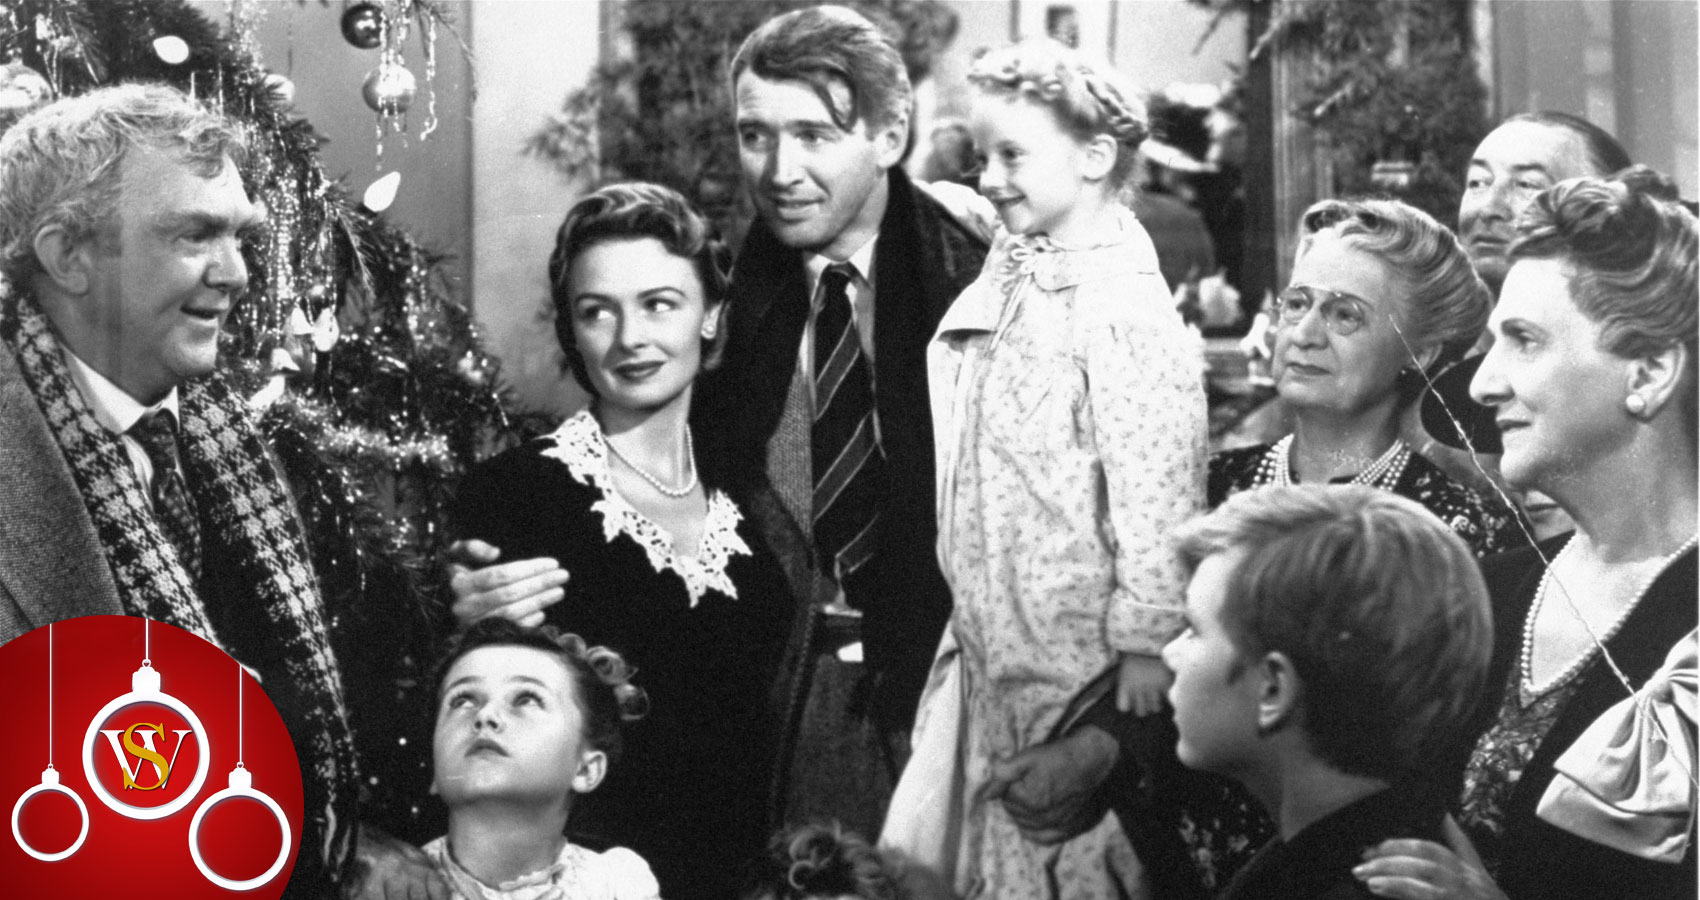 Christmas Movies, a poem written by Roger Turner at Spillwords.com